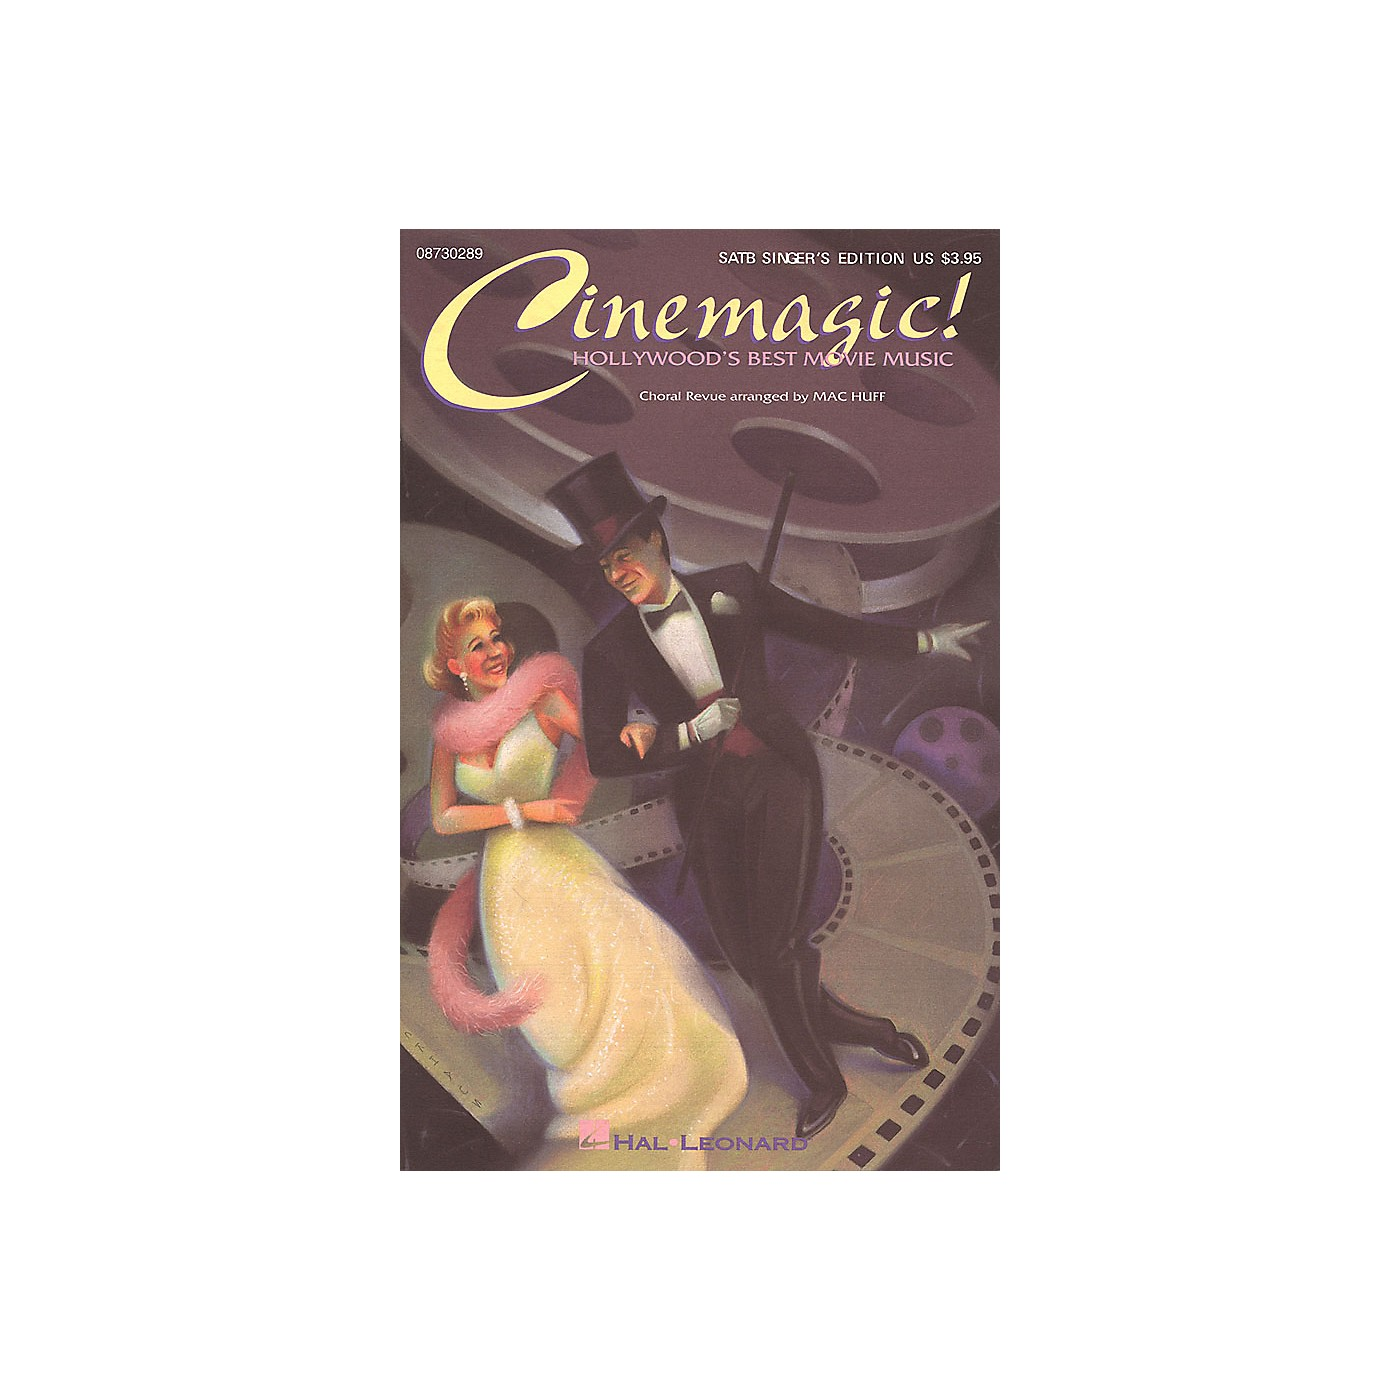 Hal Leonard Cinemagic! - Hollywood's Best Movie Music (Medley) SATB Singer arranged by Mac Huff thumbnail